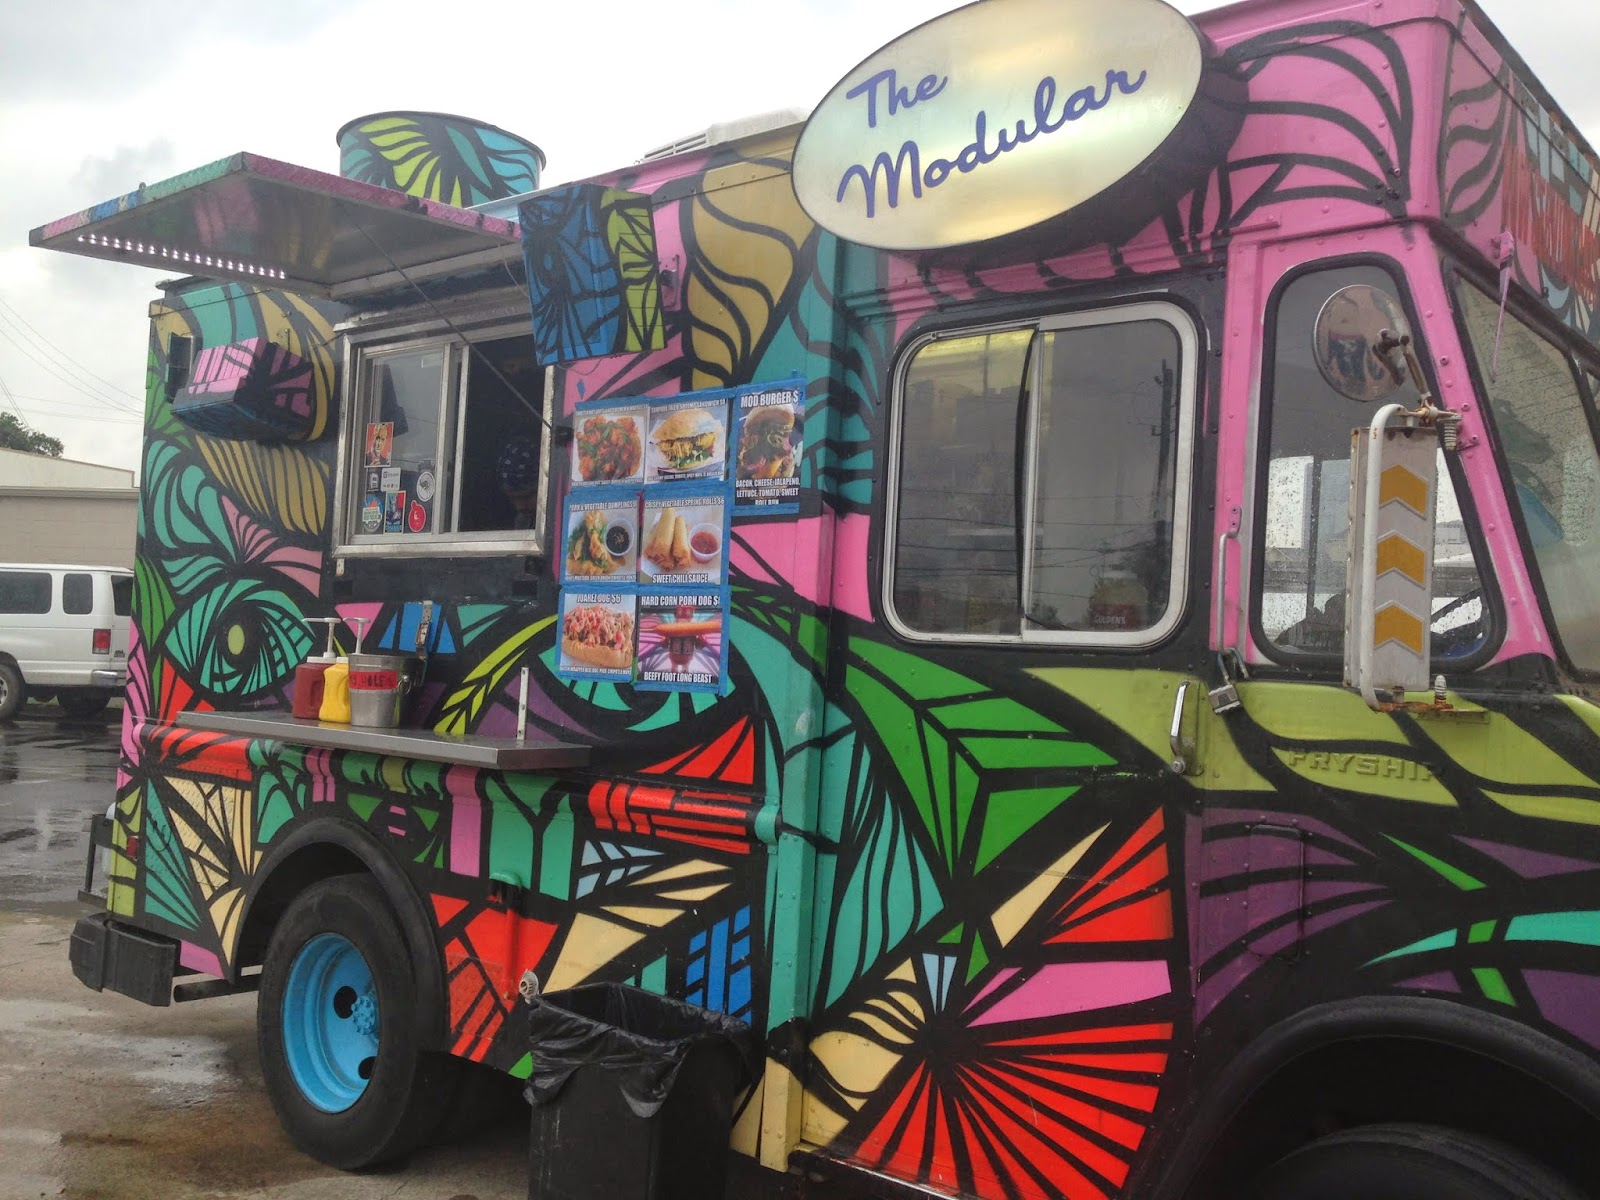 The Modular Unit Food Truck, Houston TX